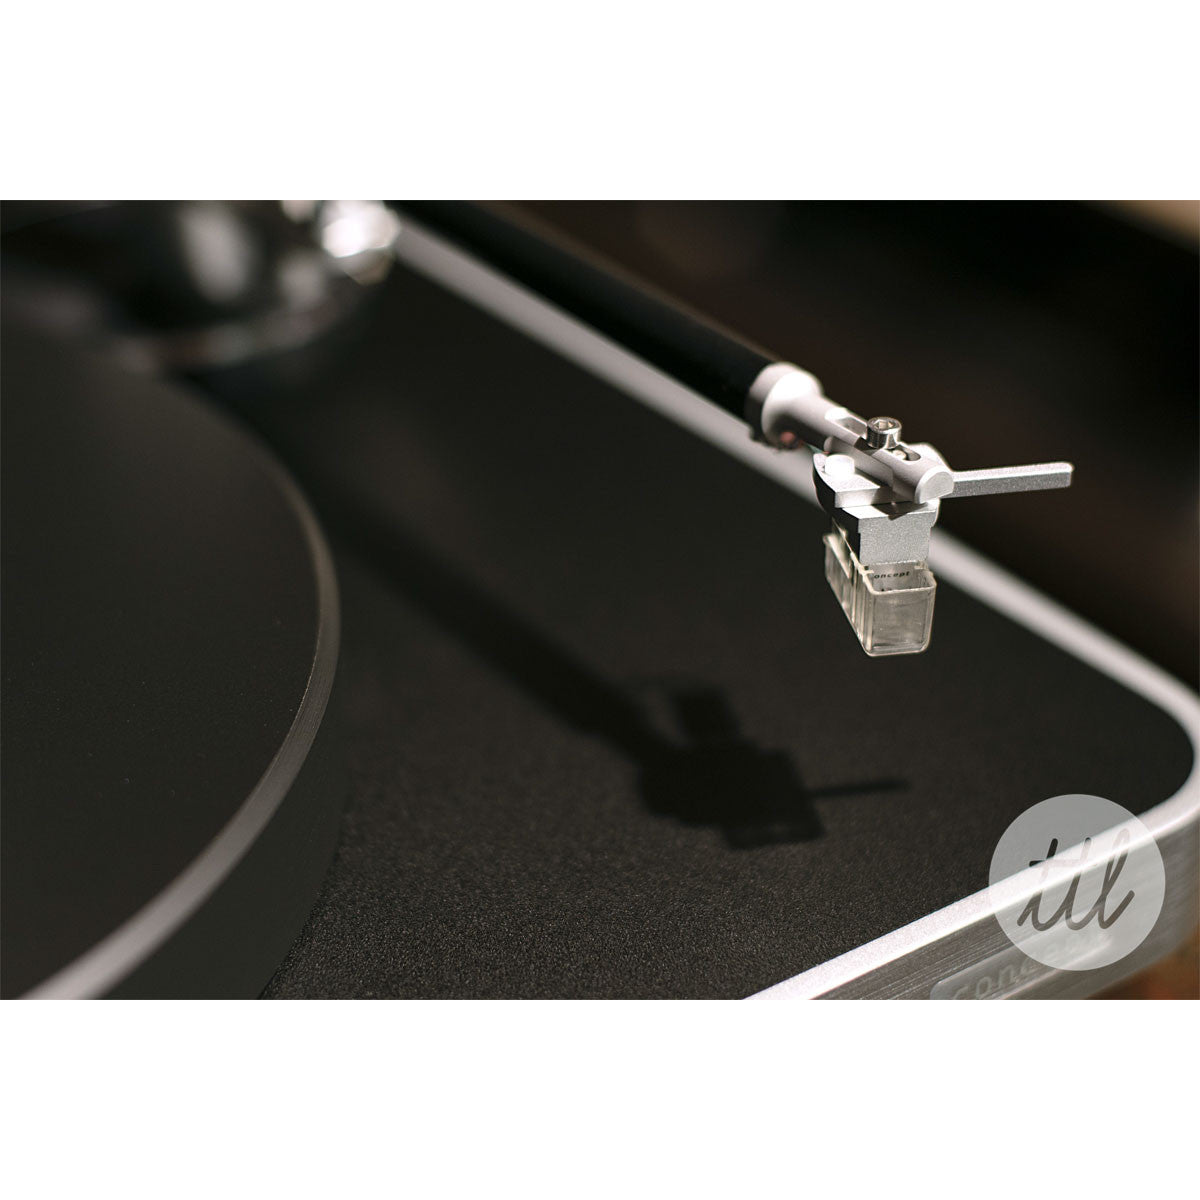 Clearaudio: Concept Turntable - Verify Tonearm / Concept MM Cartridge lifestyle cartridge